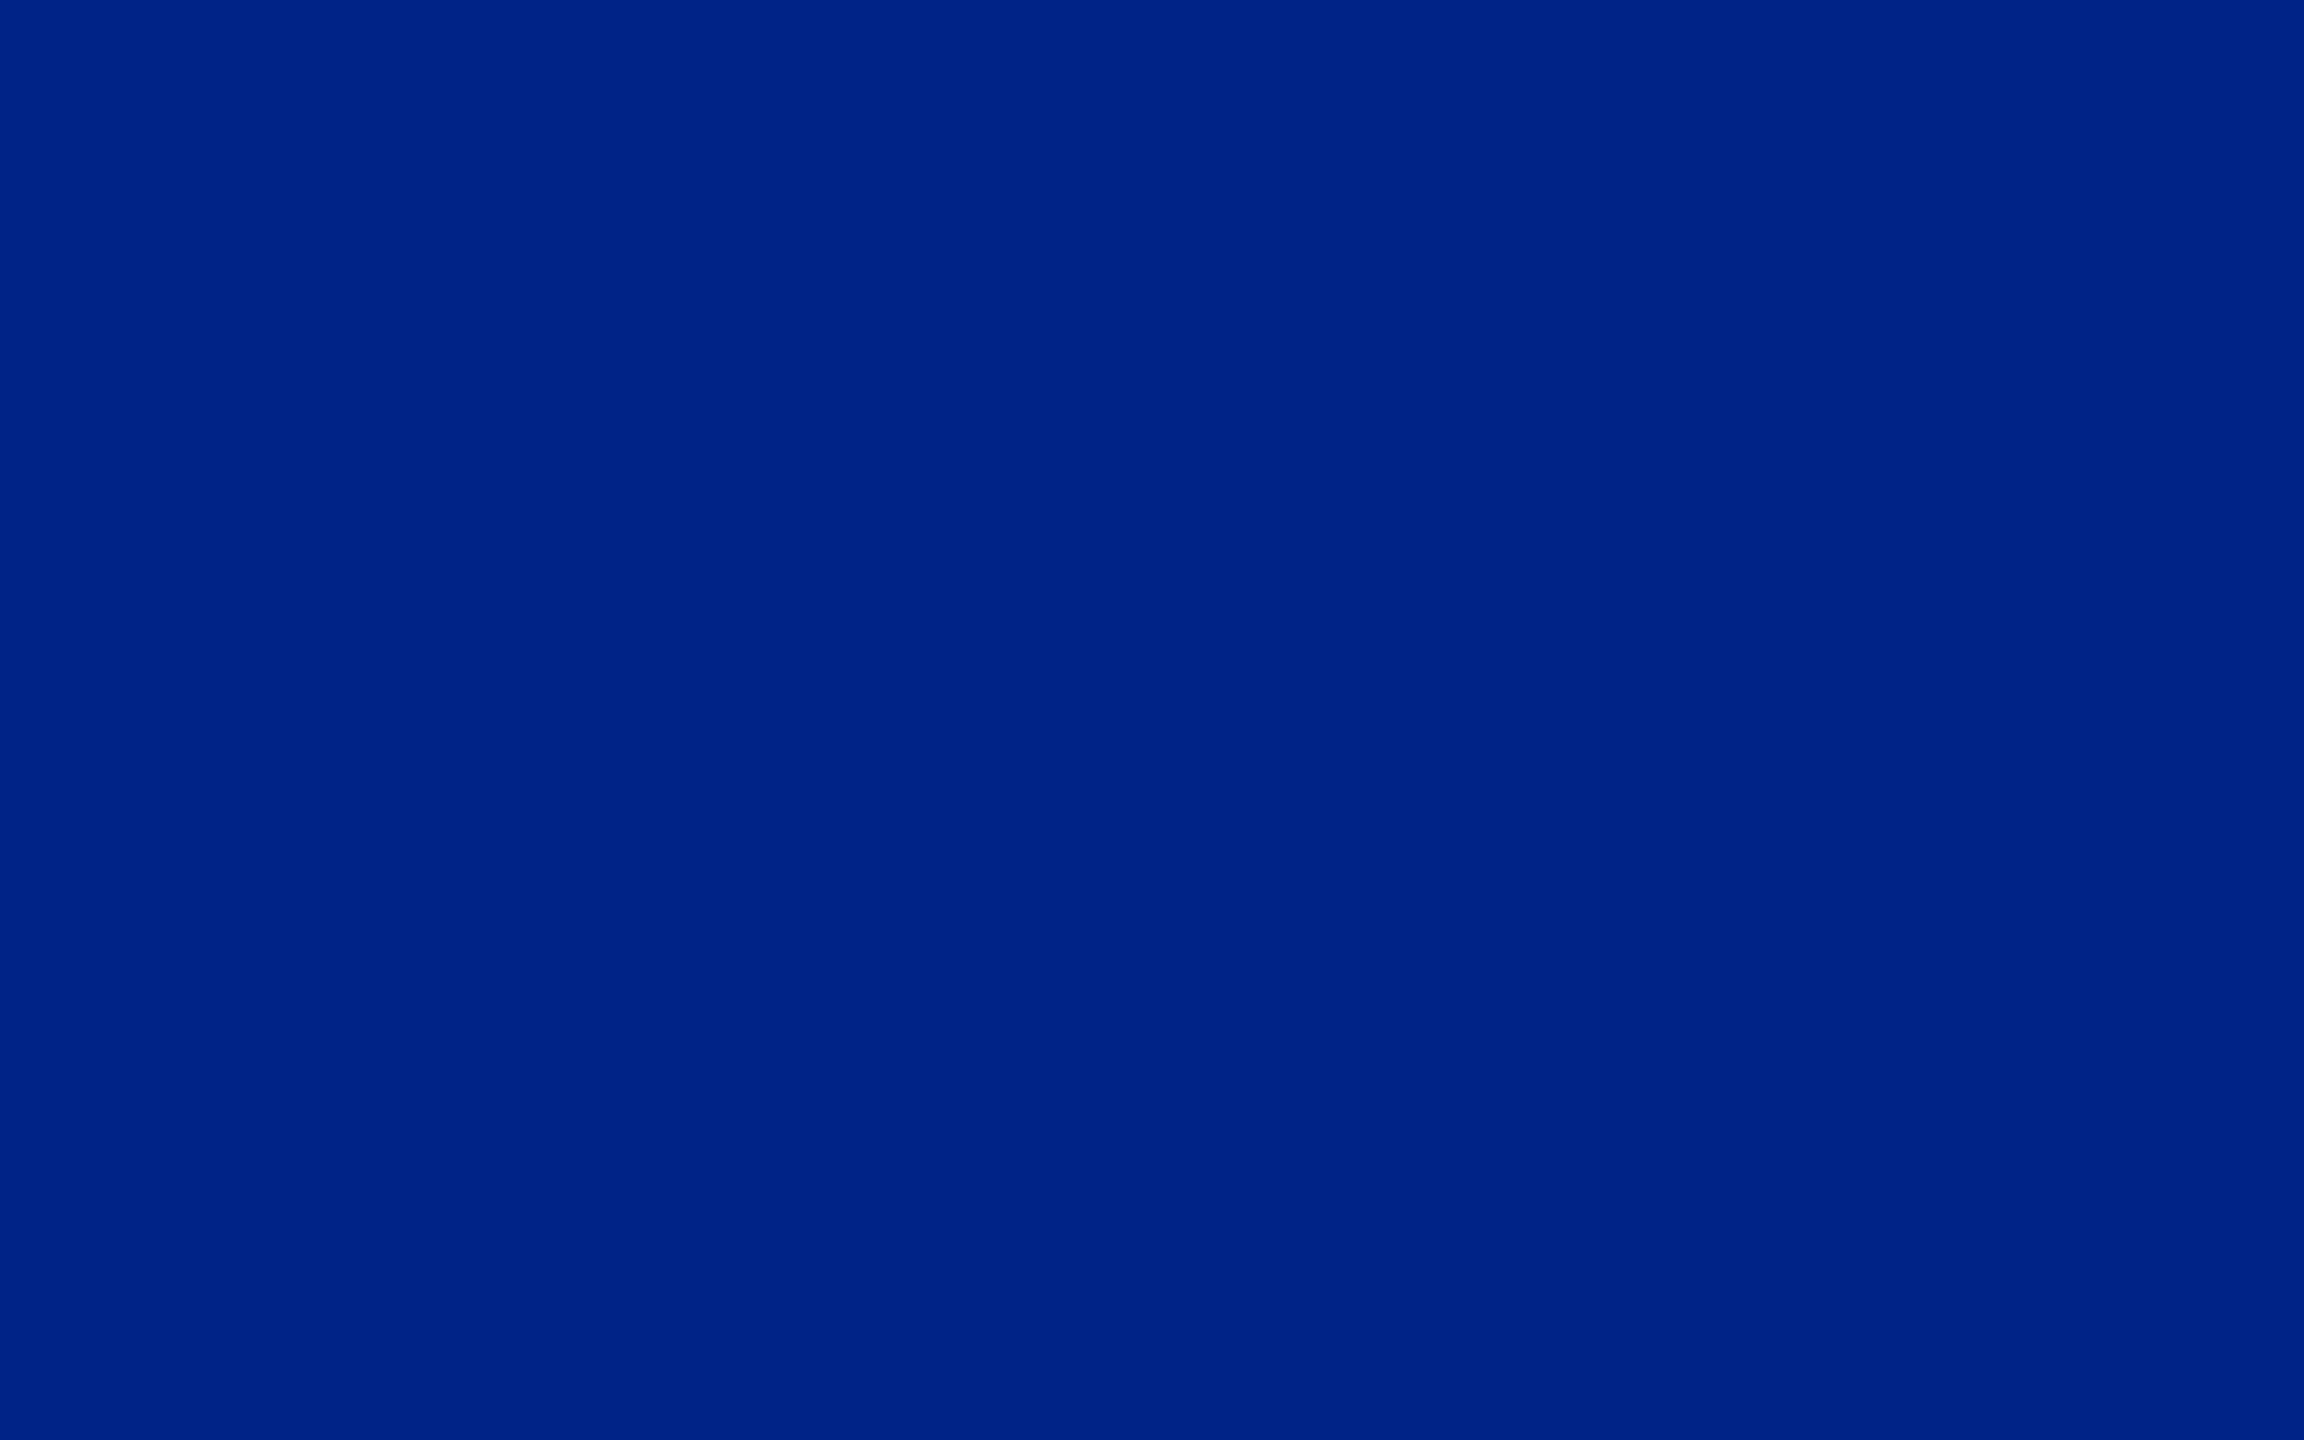 2304x1440 Resolution Blue Solid Color Background